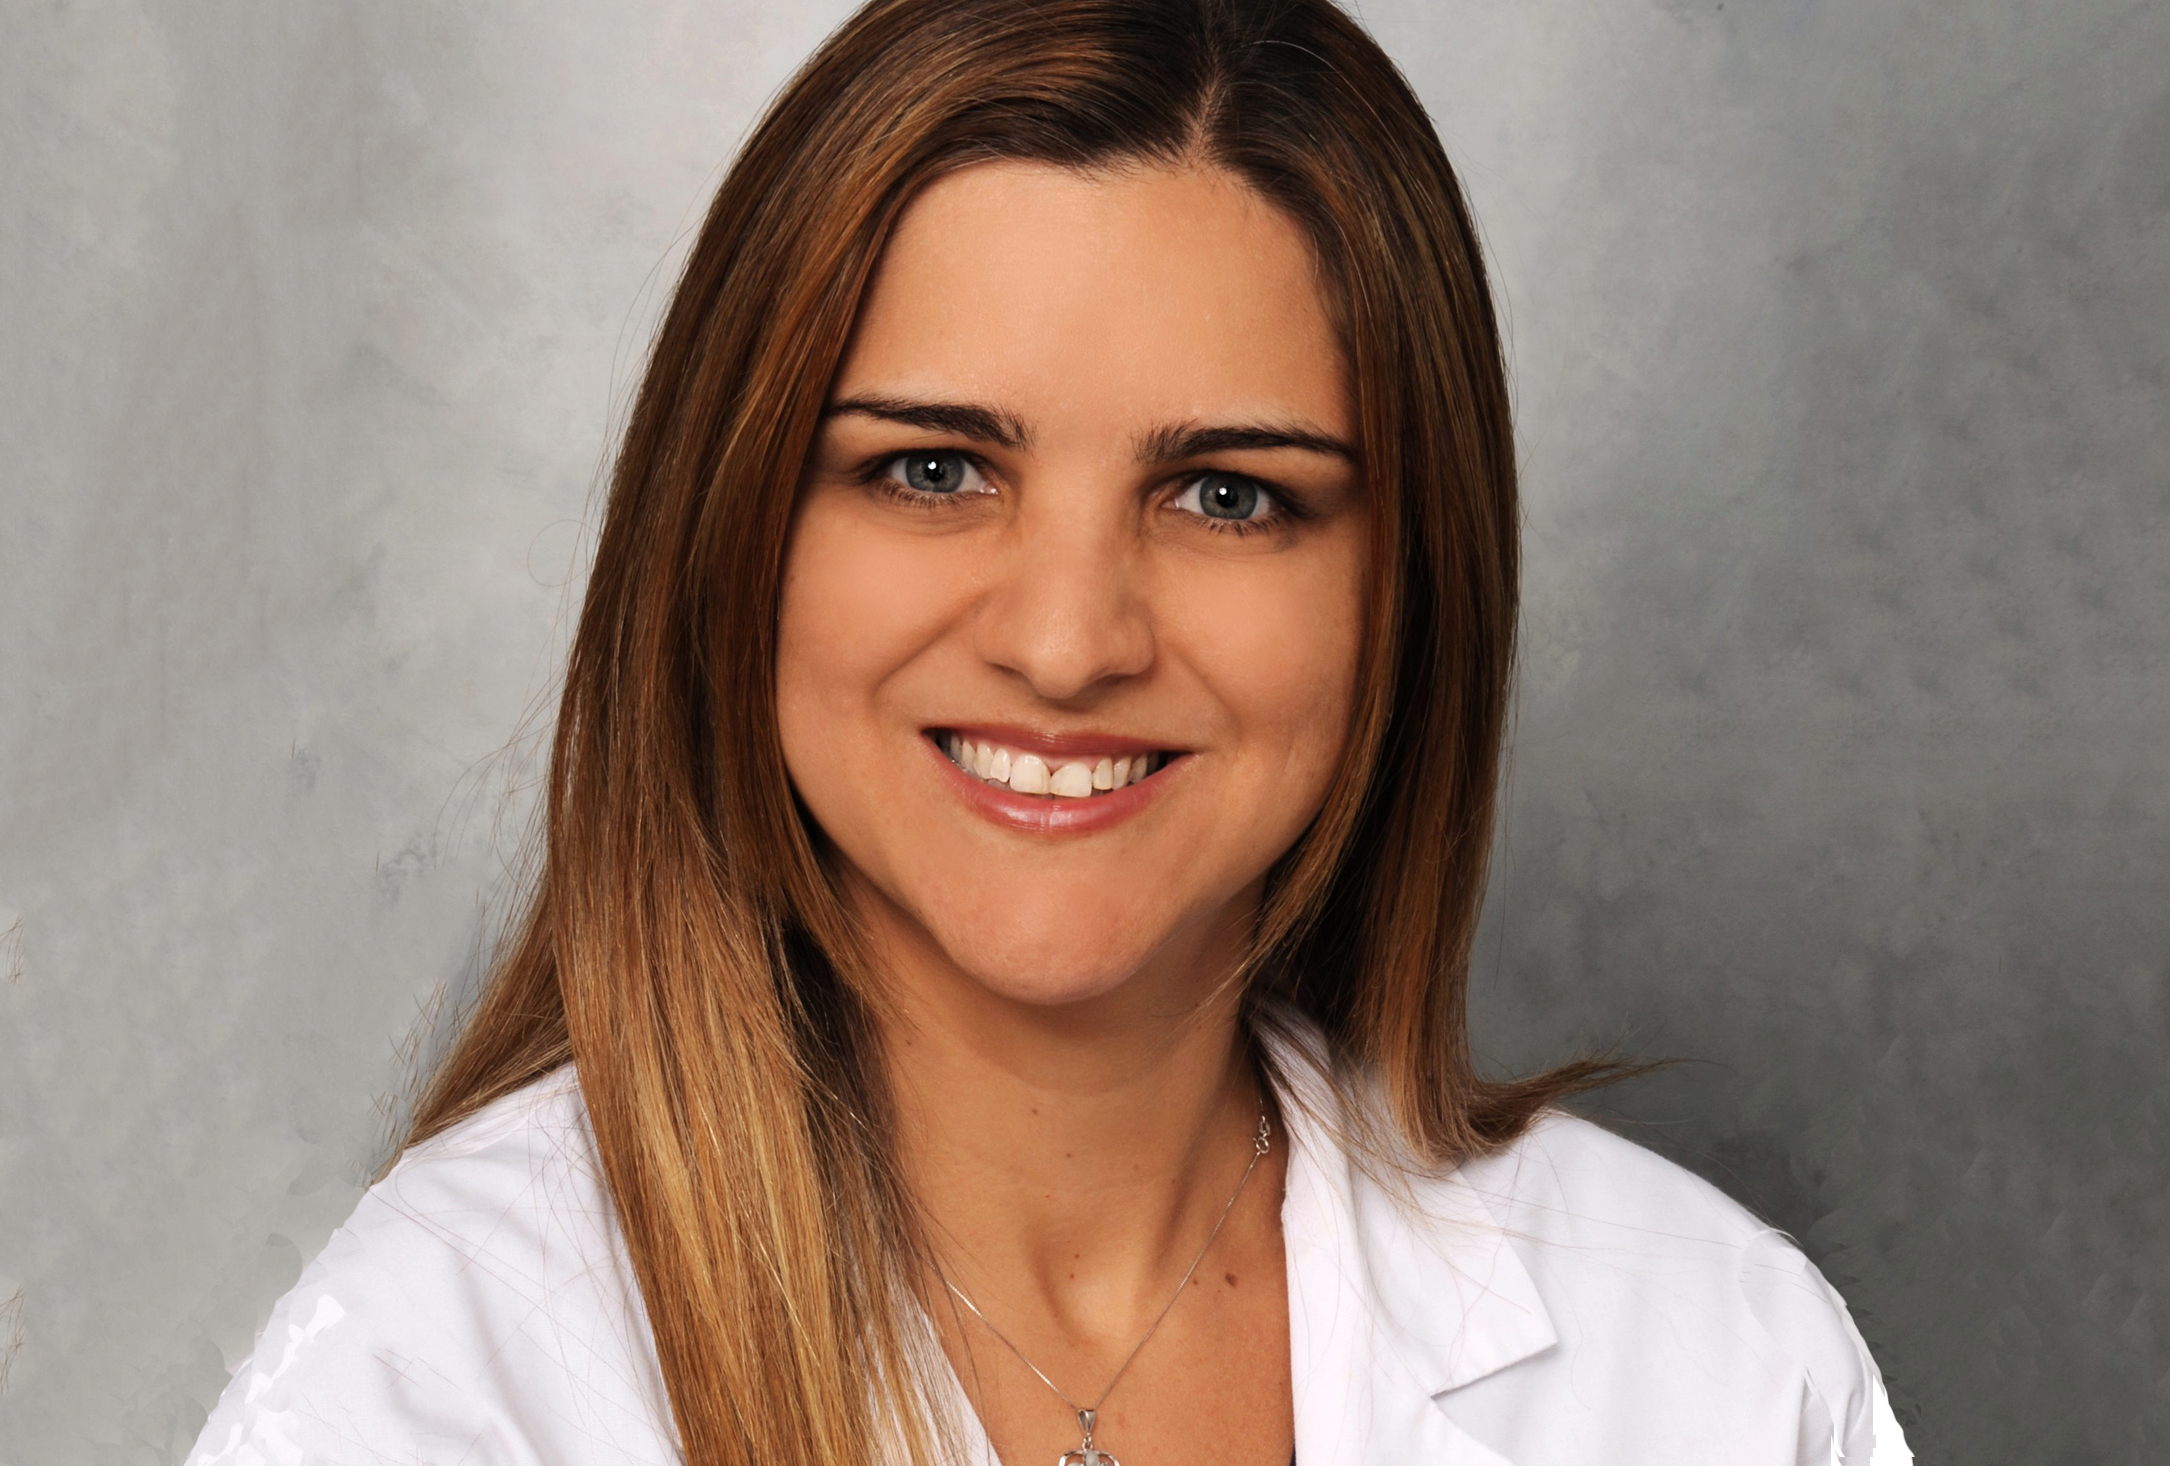 Kapiolani Welcomes Dr. Camilla Fraga Lovejoy